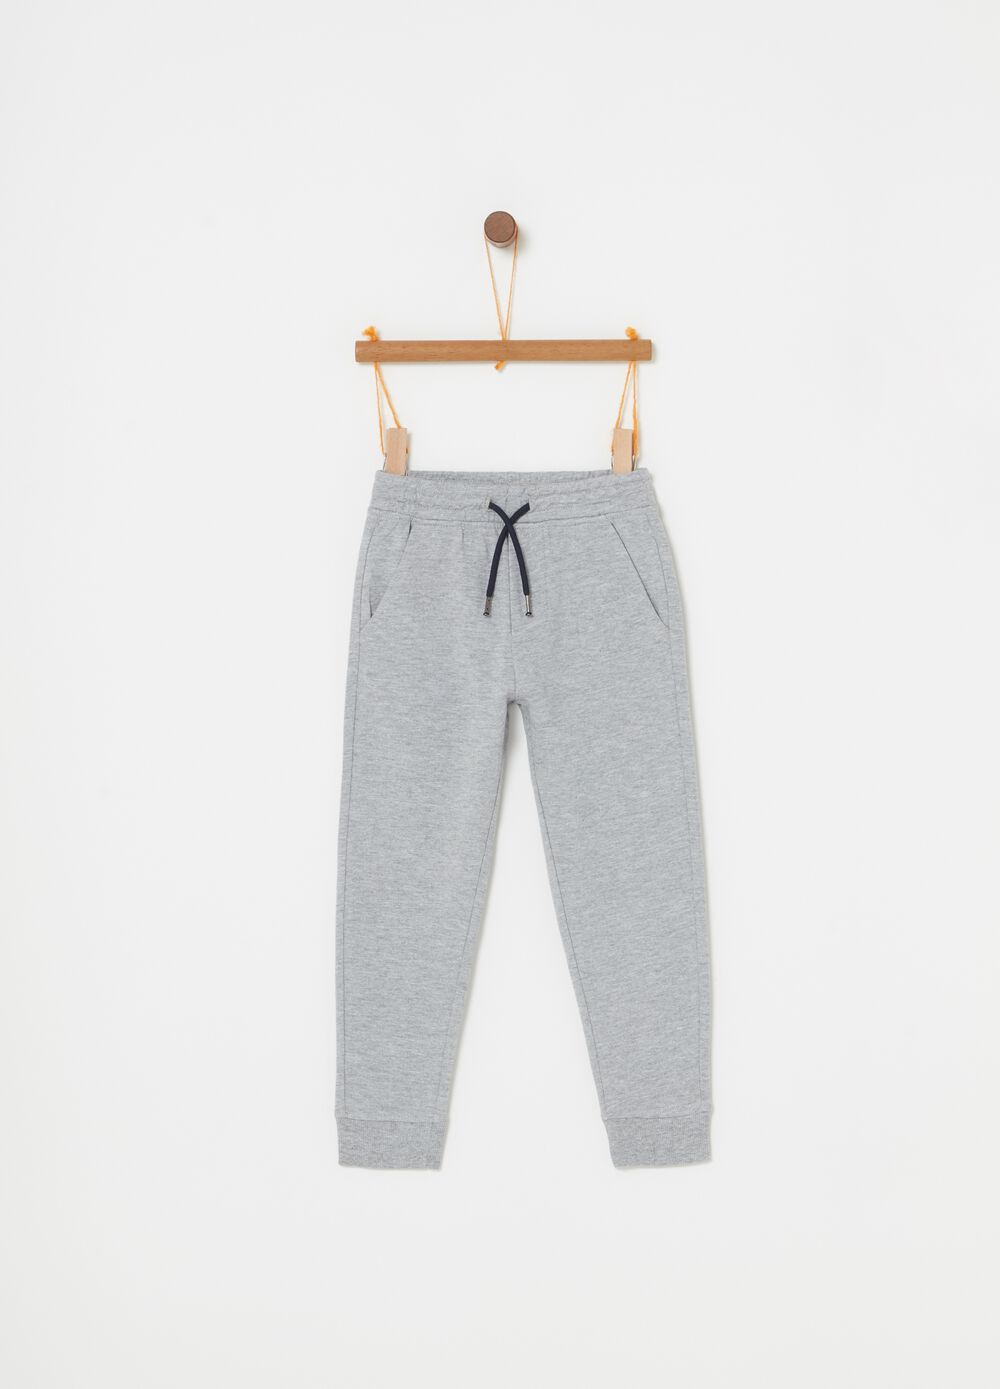 French terry mélange trousers with drawstring